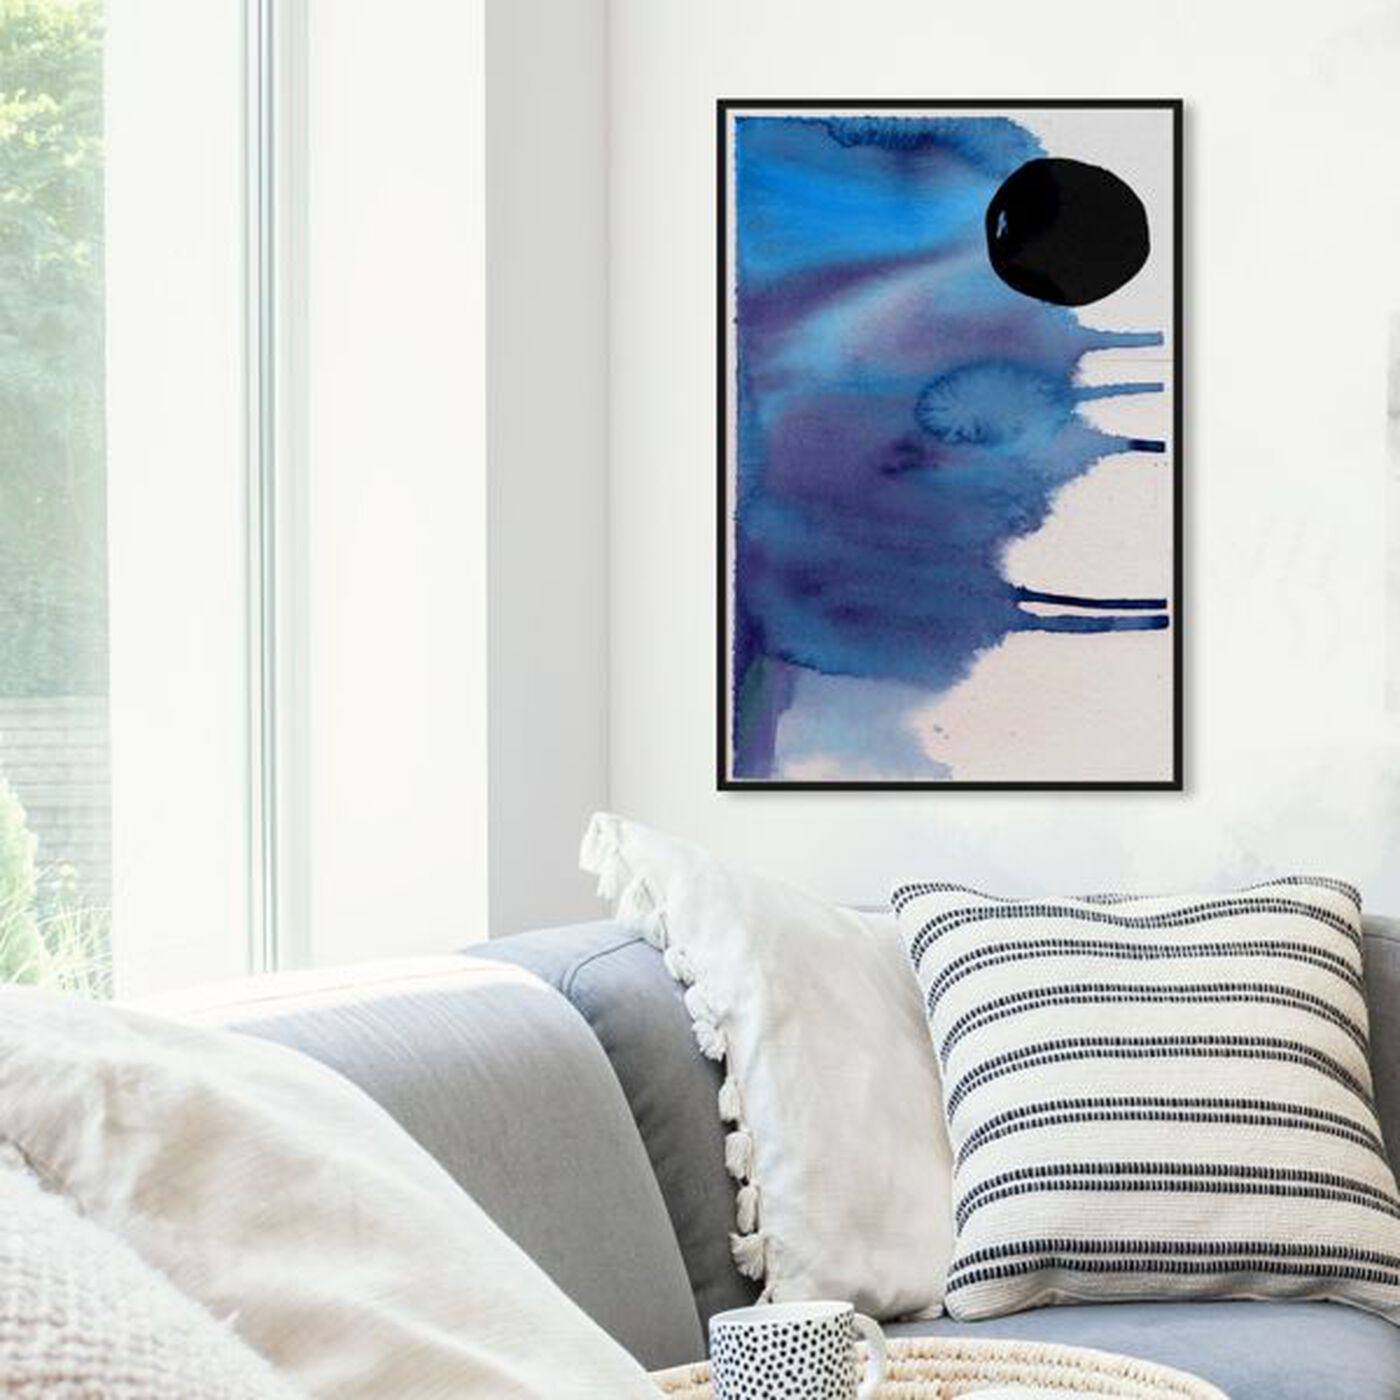 Hanging view of Hiver featuring abstract and watercolor art.